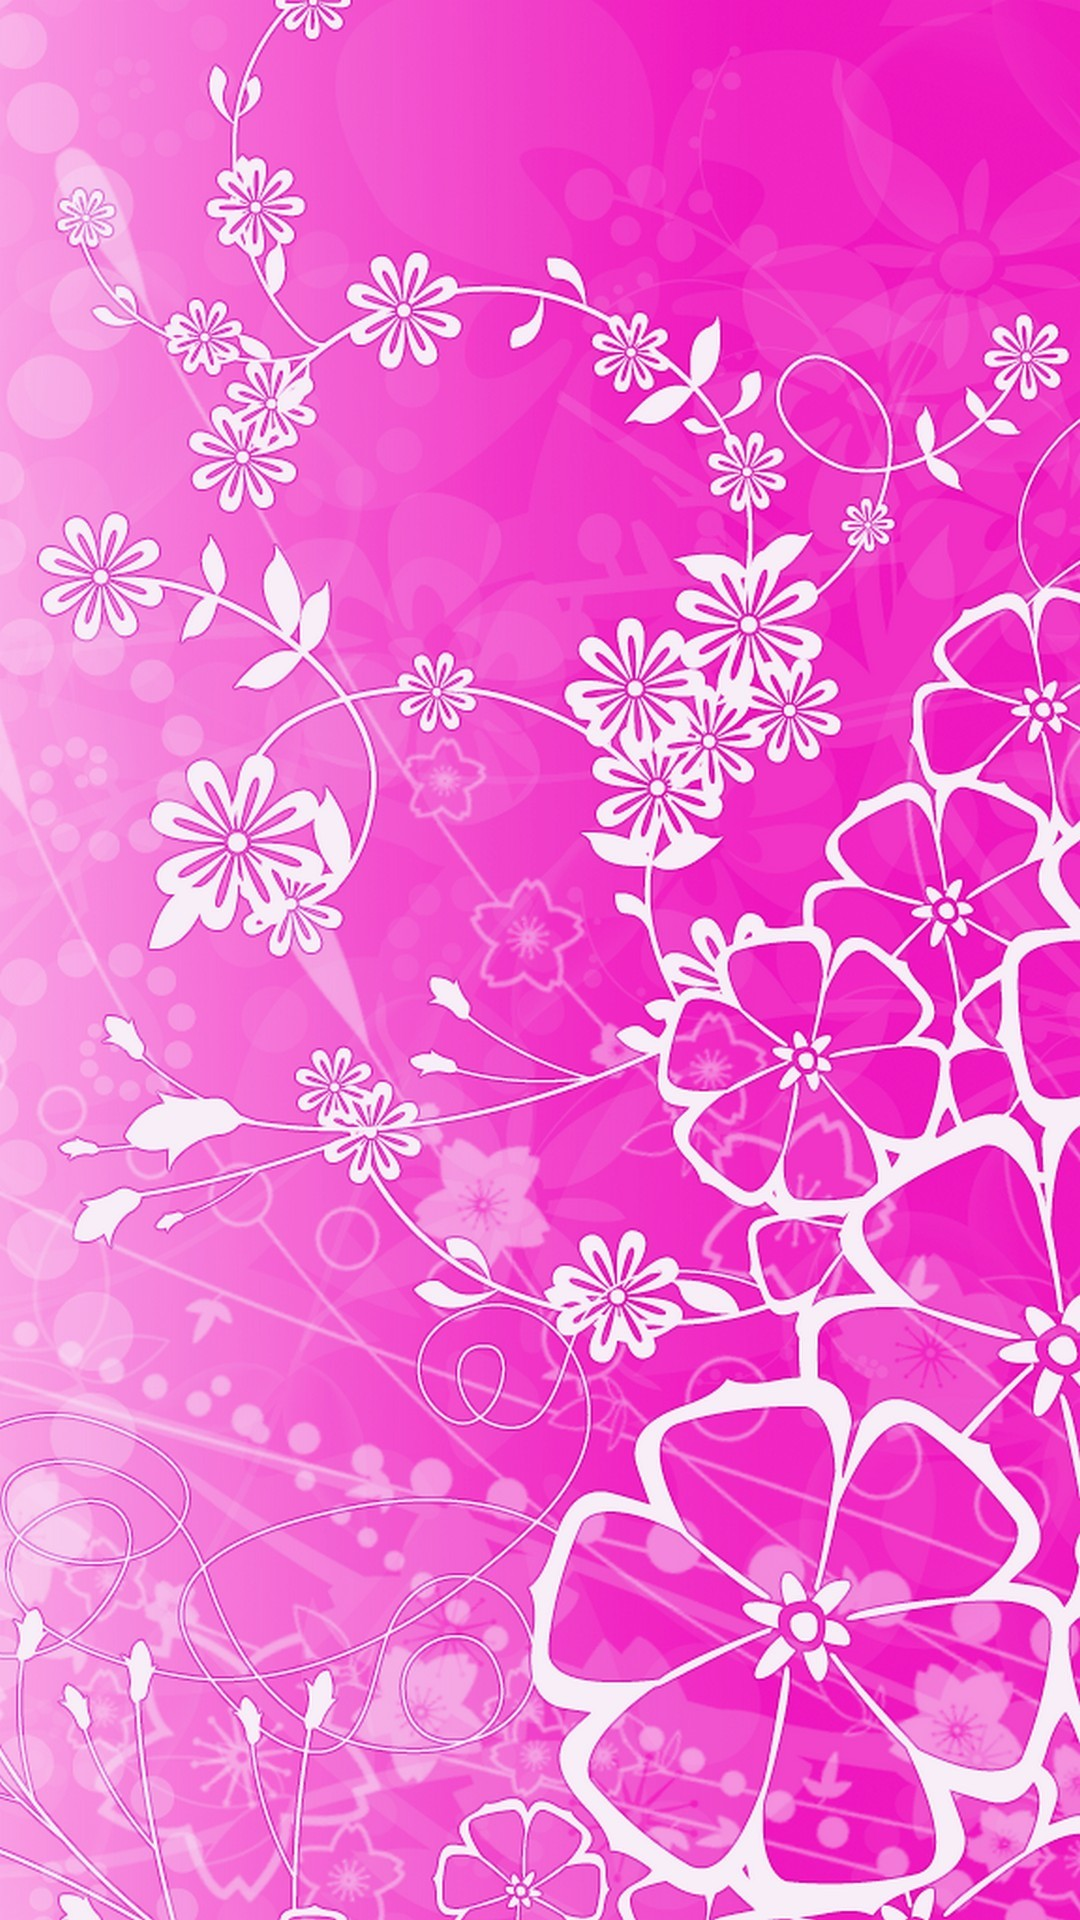 Animated Bubbles 3d Desktop Wallpapers Pink Background Image 183 ① Wallpapertag